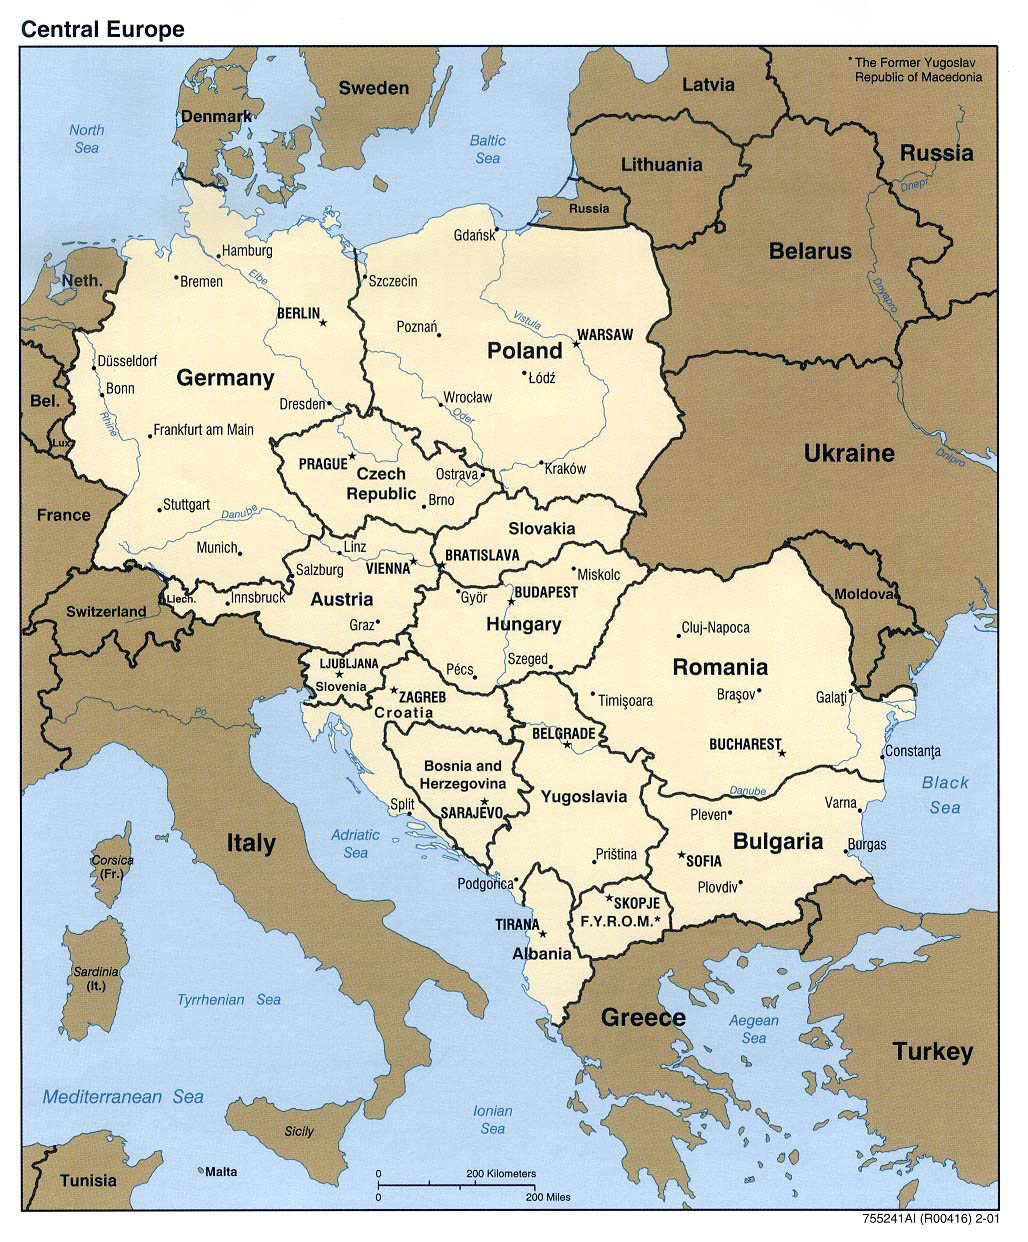 Other maps of Europe | Maps of Central Europe, Eastern Europe ...